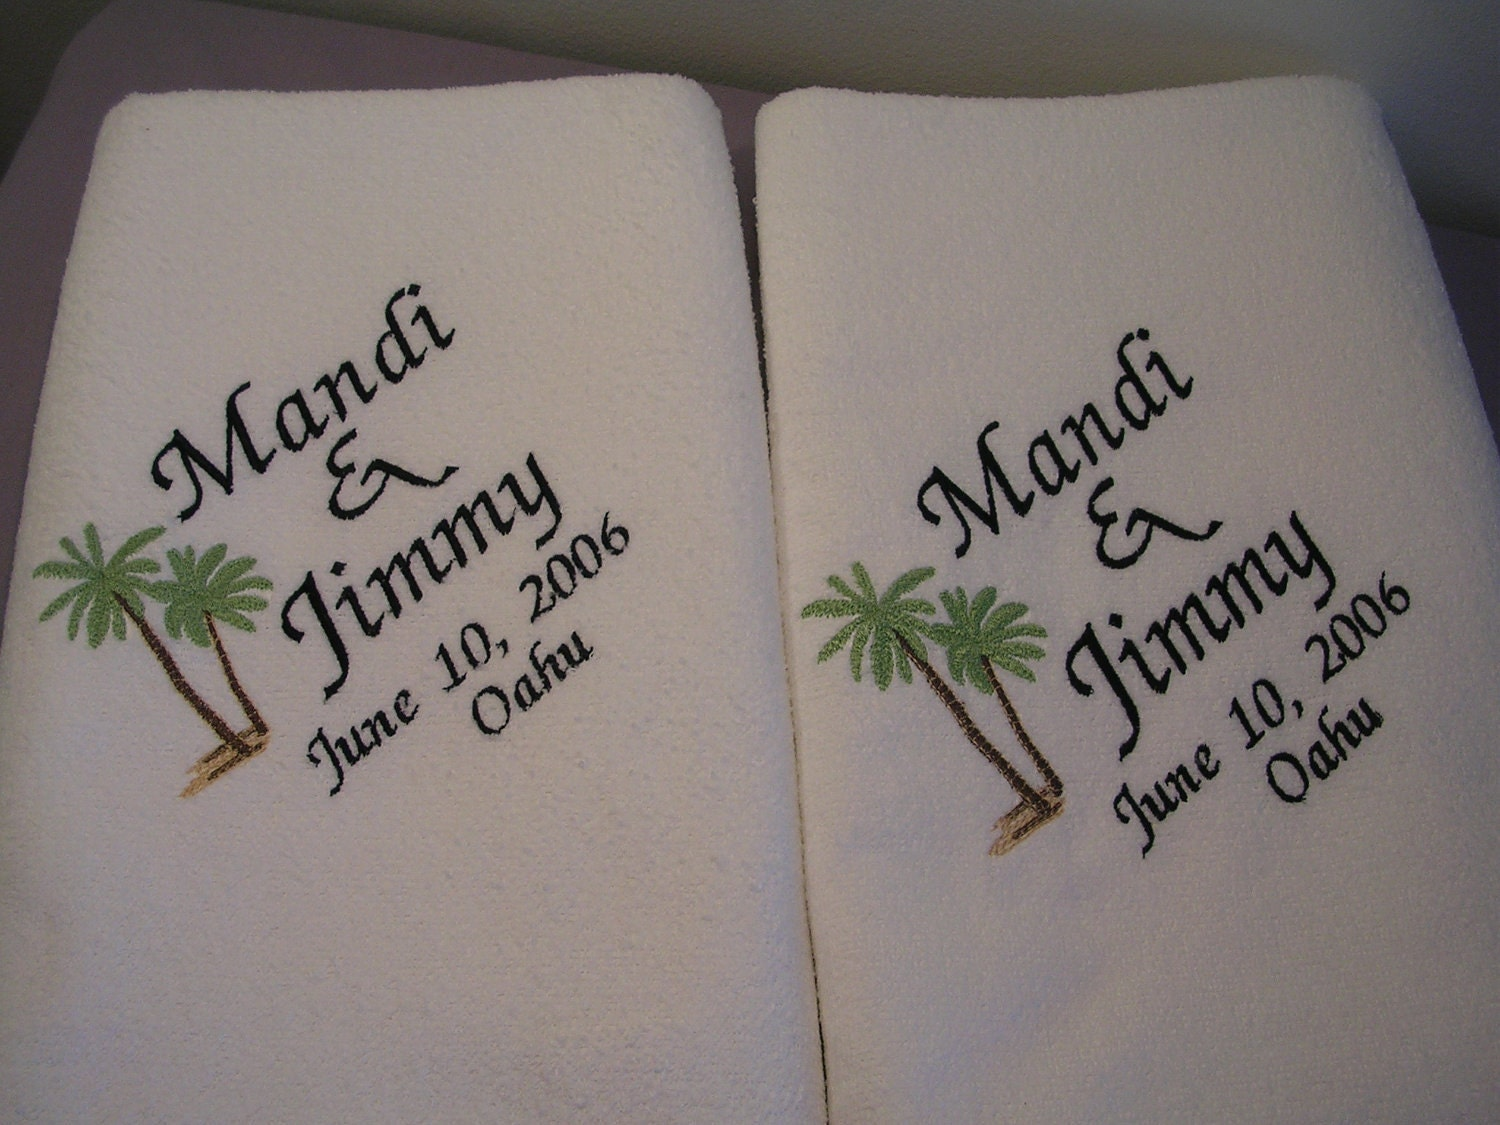 Handmade Wedding Gifts For Bride And Groom: 2 Wedding BeachTowels For Bride And Groom Towels Wedding Gift